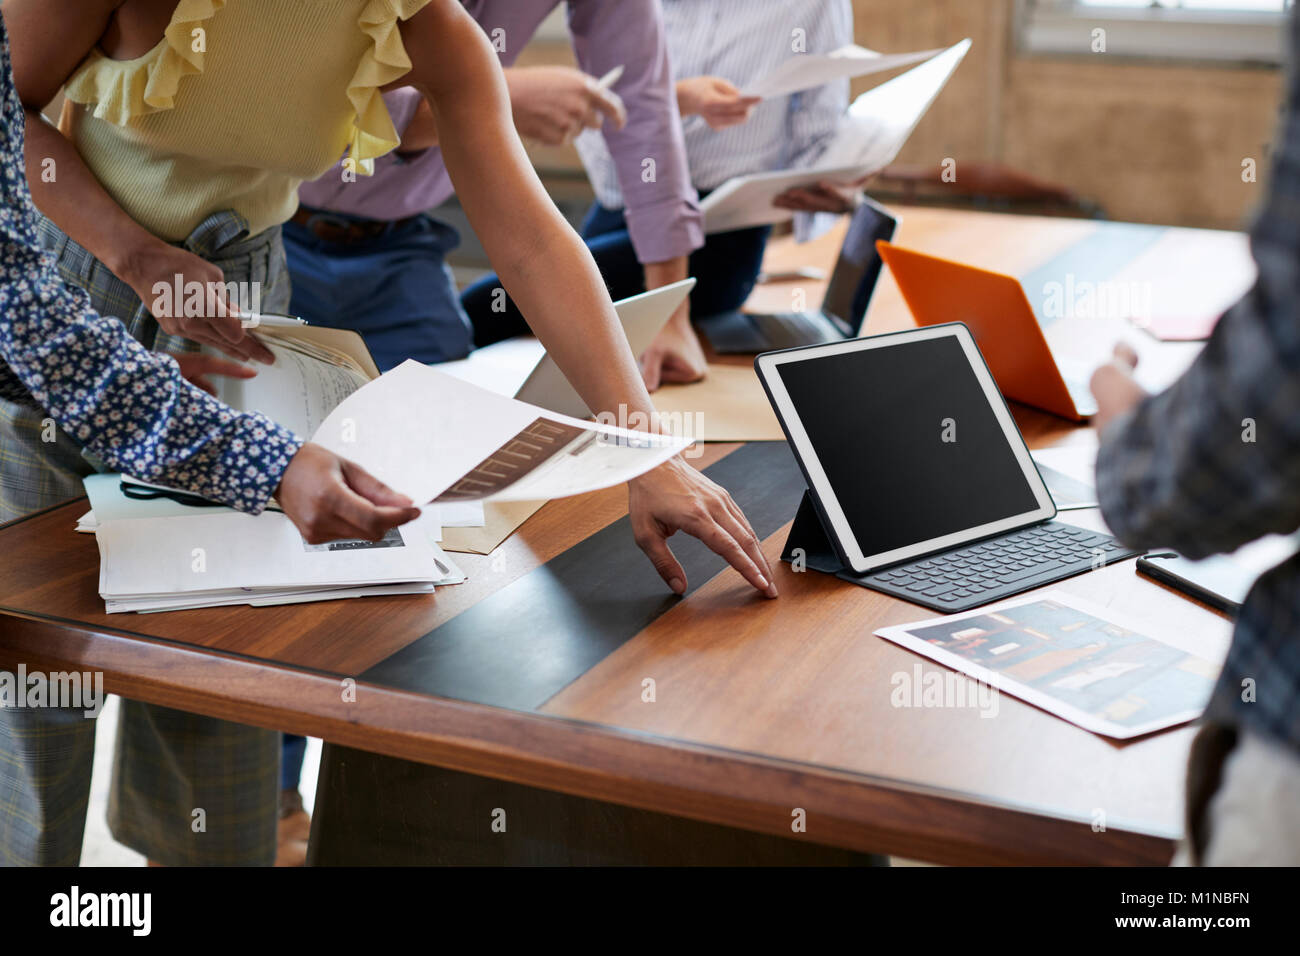 Creatives brainstorming ideas around a table, mid section - Stock Image